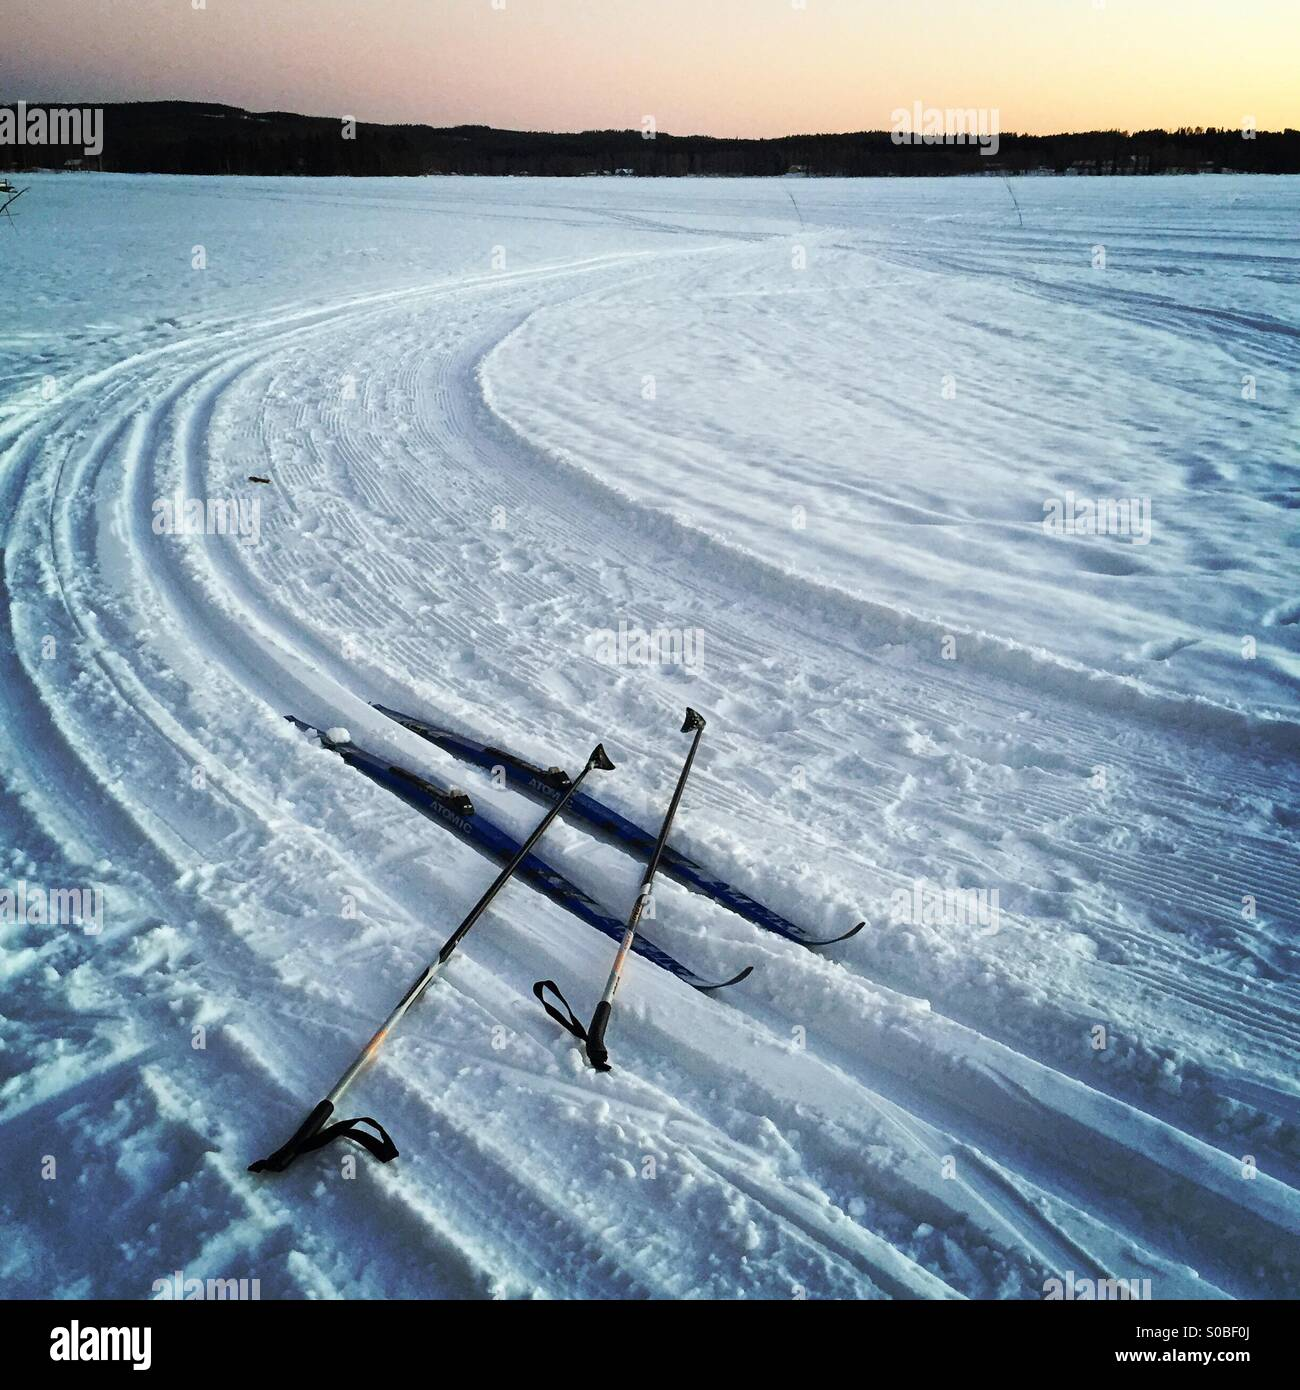 A pair of cross country skis and poles in the shape of a hashtag in some wilderness tracks on a frozen Nordic lake - Stock Image